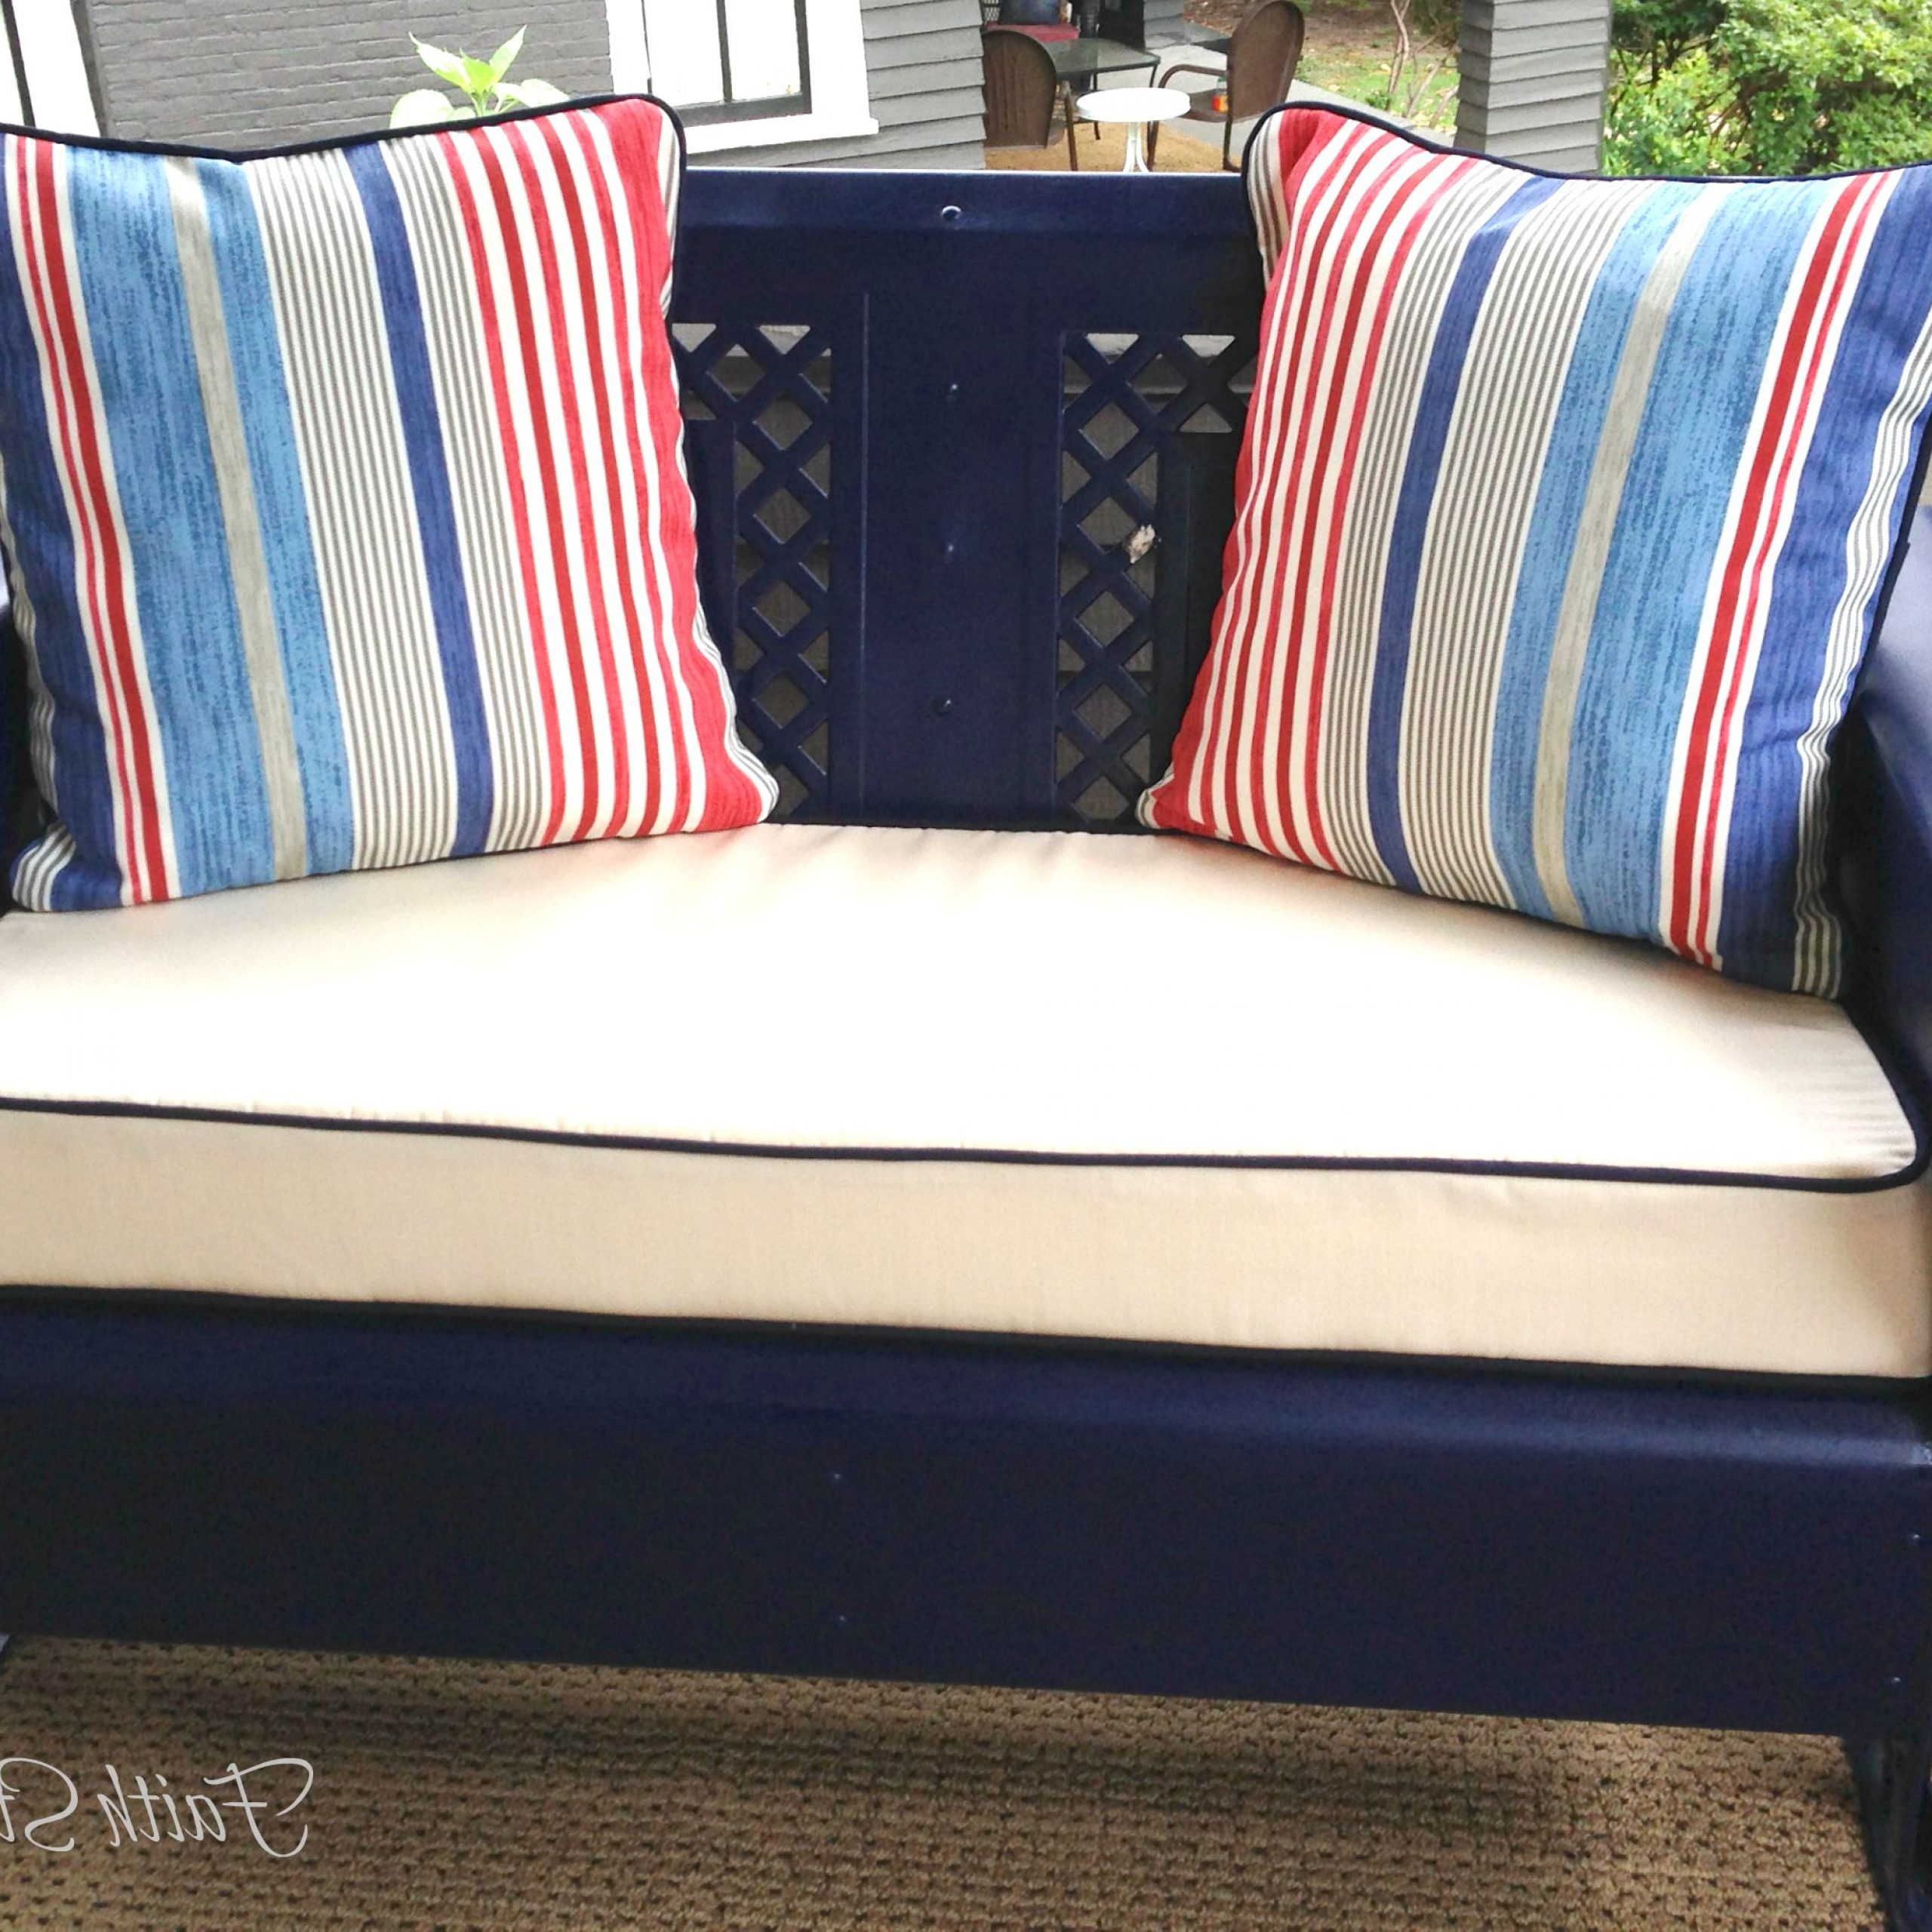 Well Liked Glider Benches With Cushions In Furniture: Vintage Aluminum Porch Glider With Cushions For (Gallery 16 of 30)